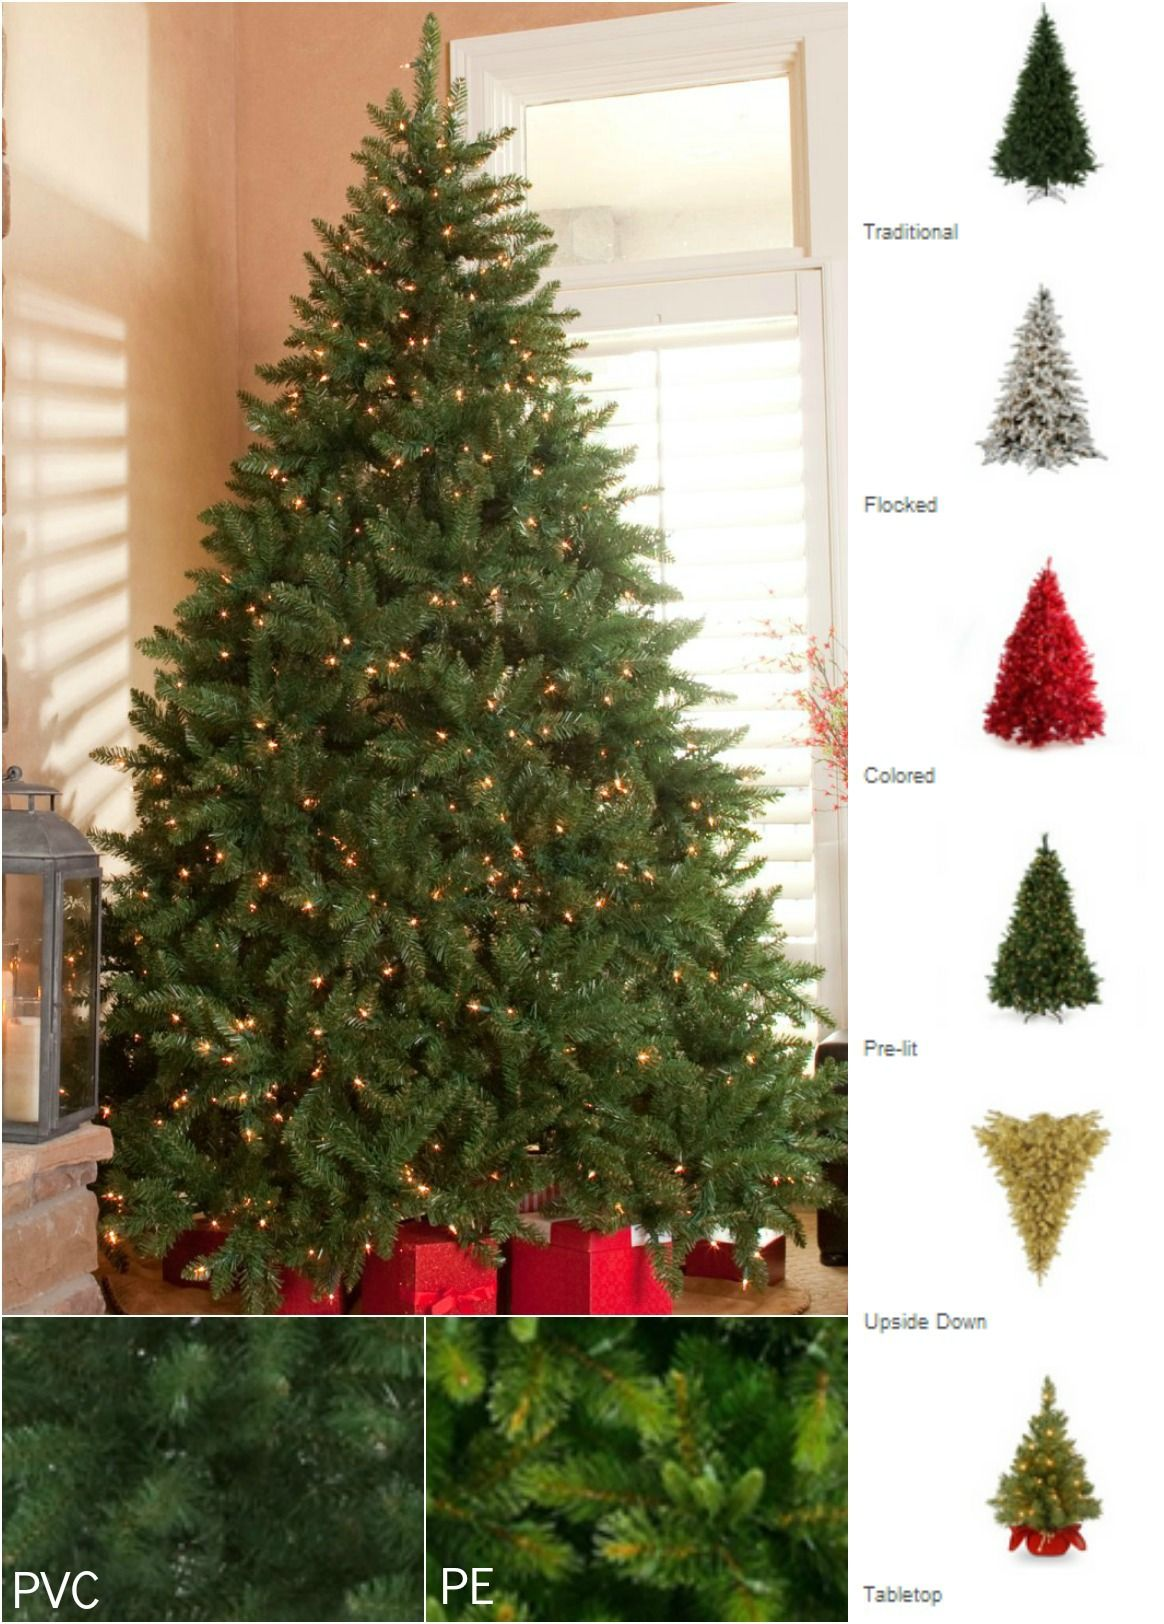 Follow the link to this Artificial Christmas Tree Buying